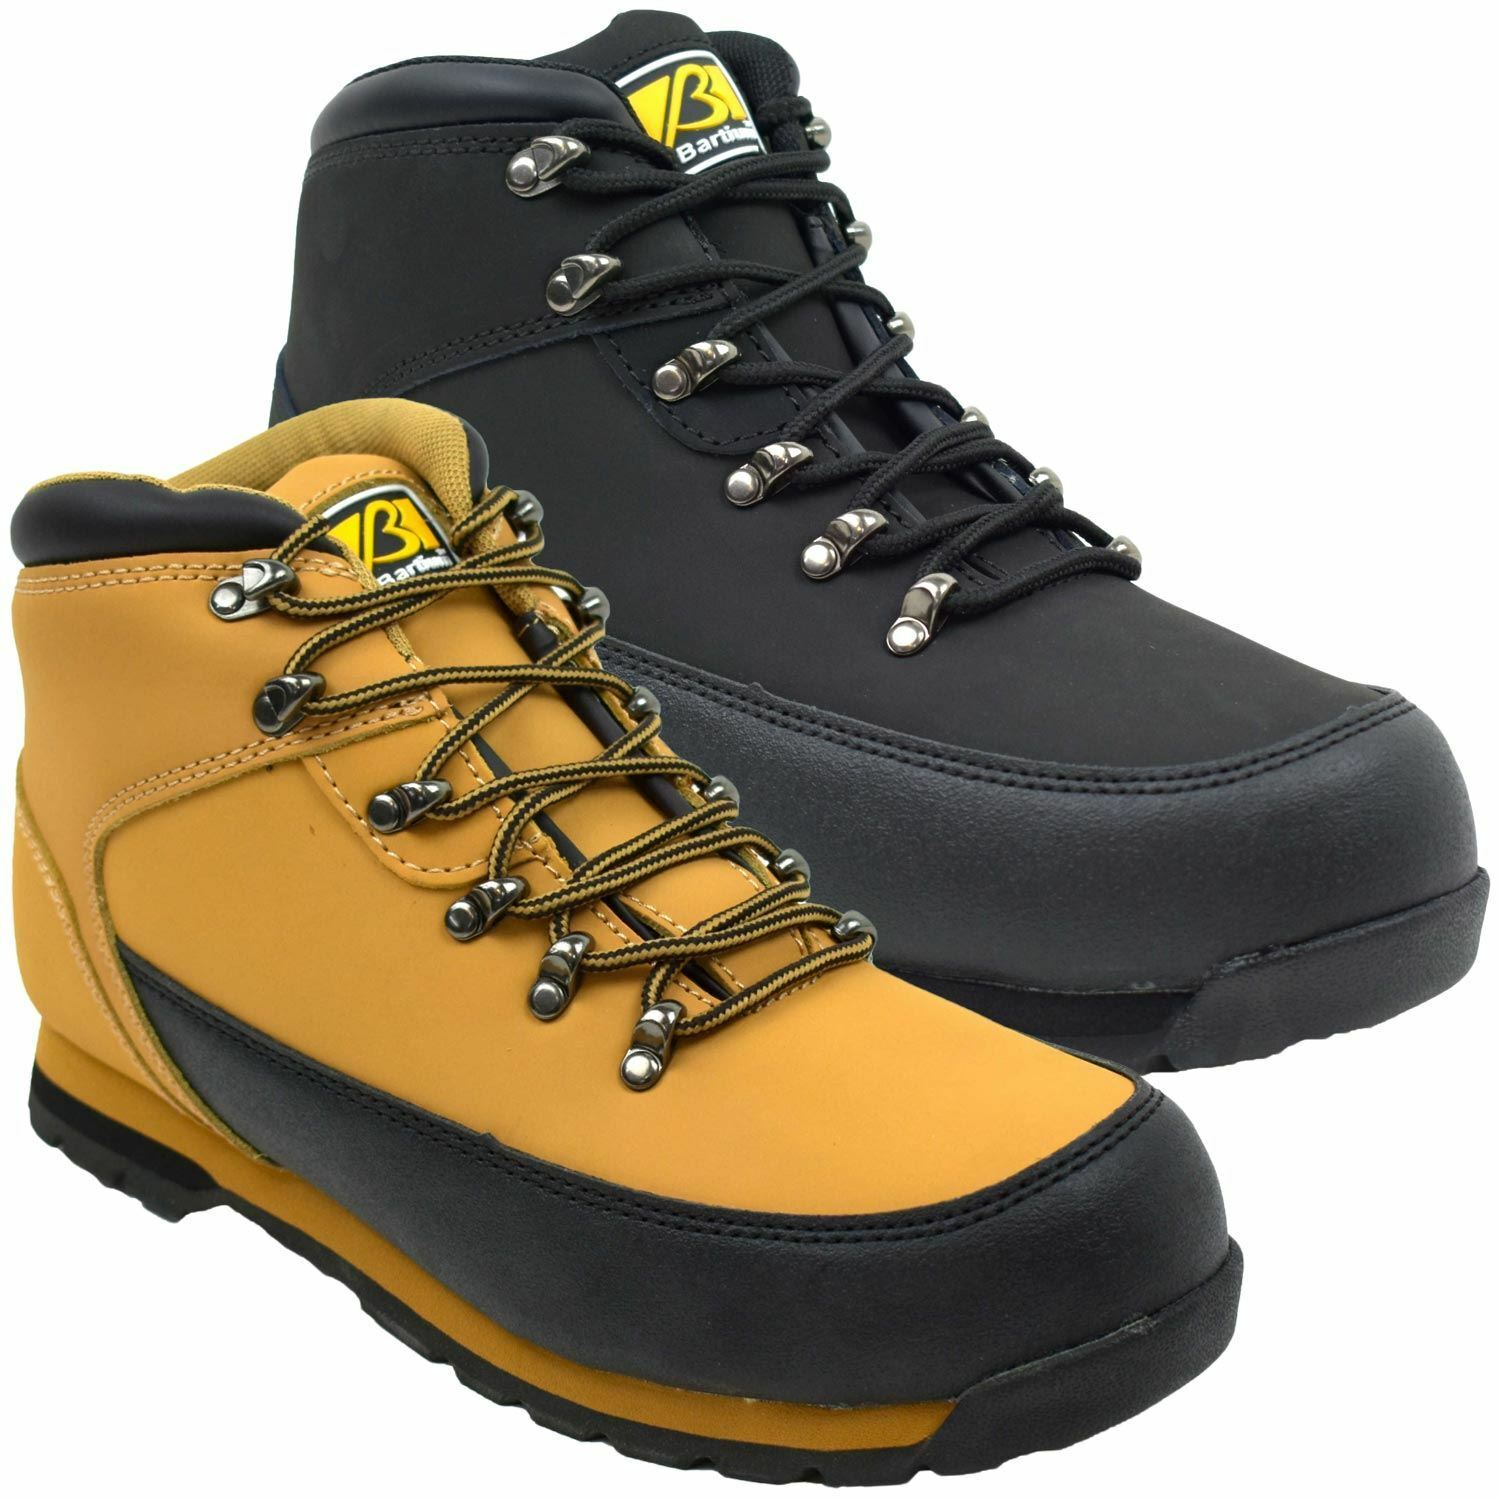 Mens Bartium Safety Lace Up Walking Hiking Round Toe Light Weight Casual shoes